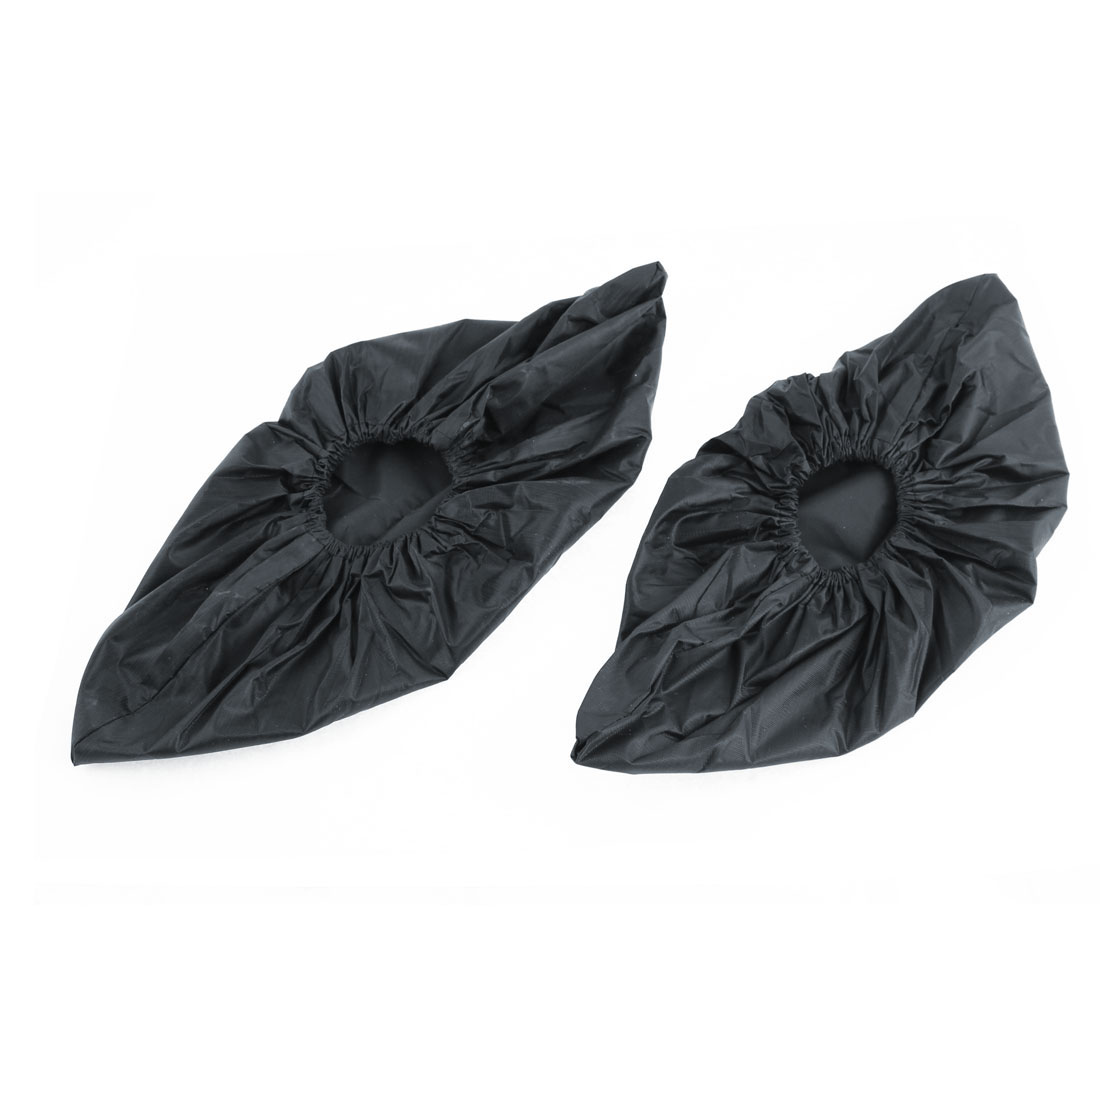 Outdoor Black Elastic Waterproof Non-slip Rain Shoes Covers Overshoes Pair